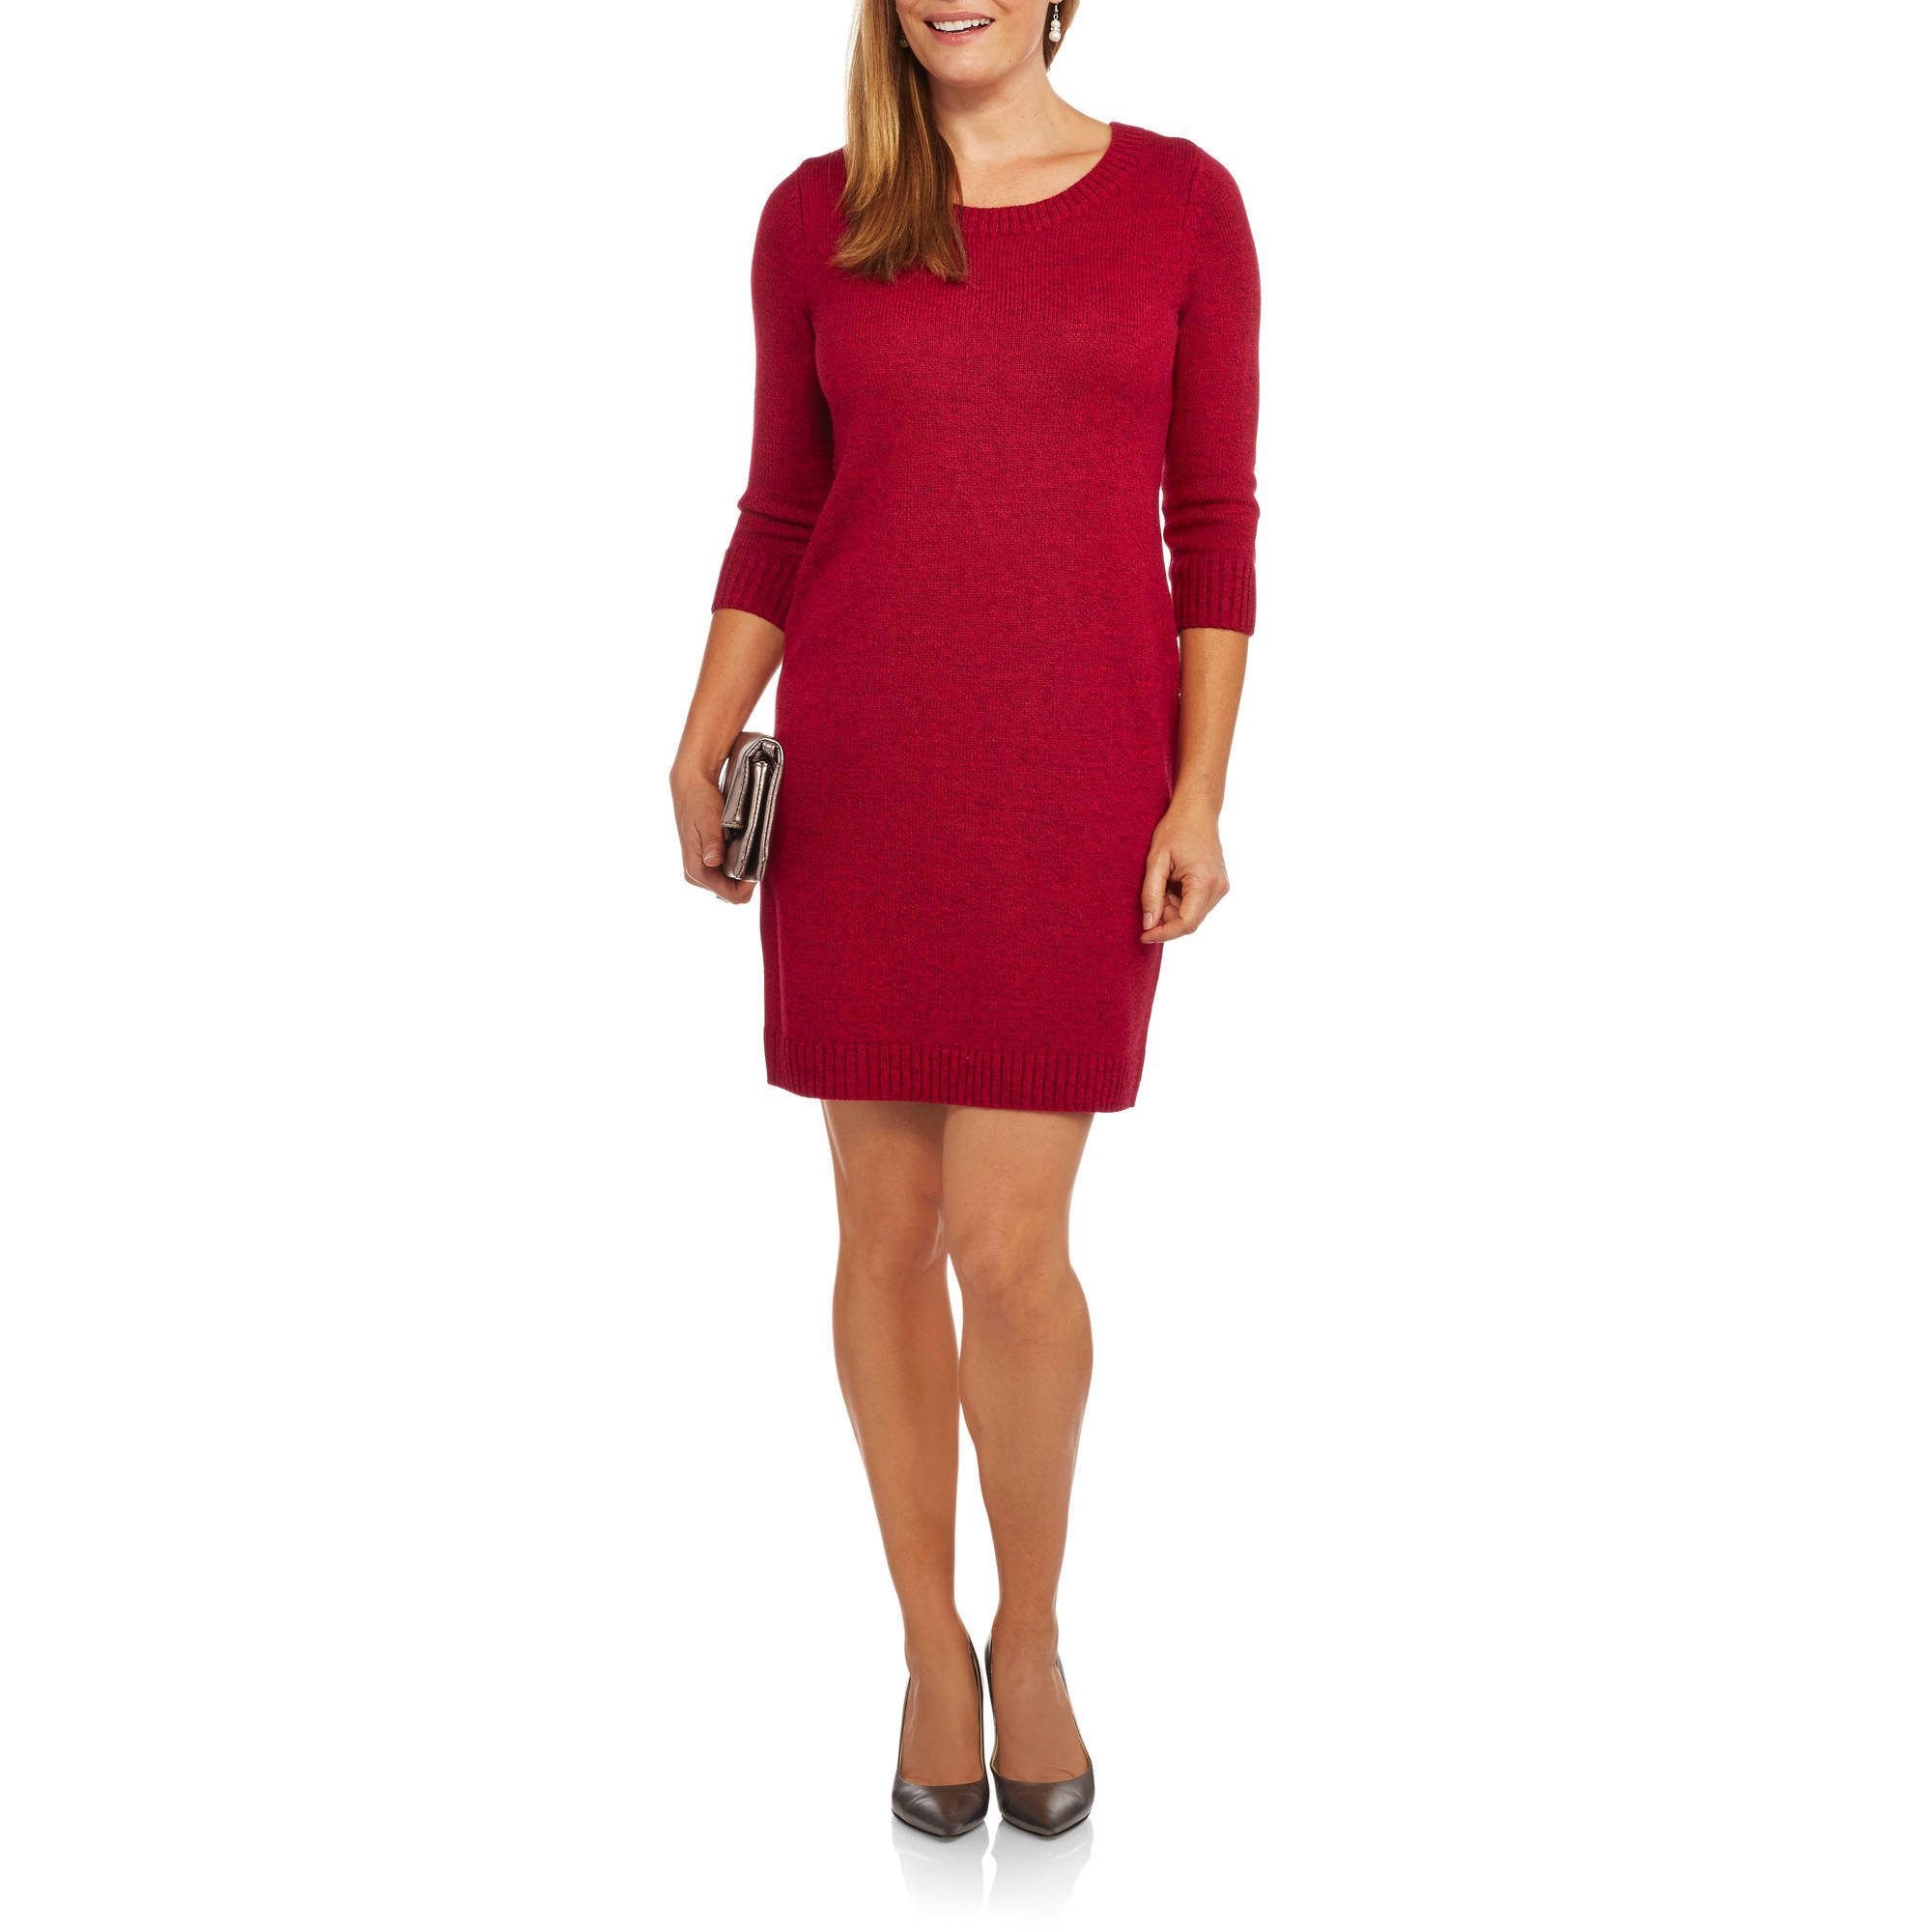 Faded Glory Women's Solid and Marled Sweater Dress